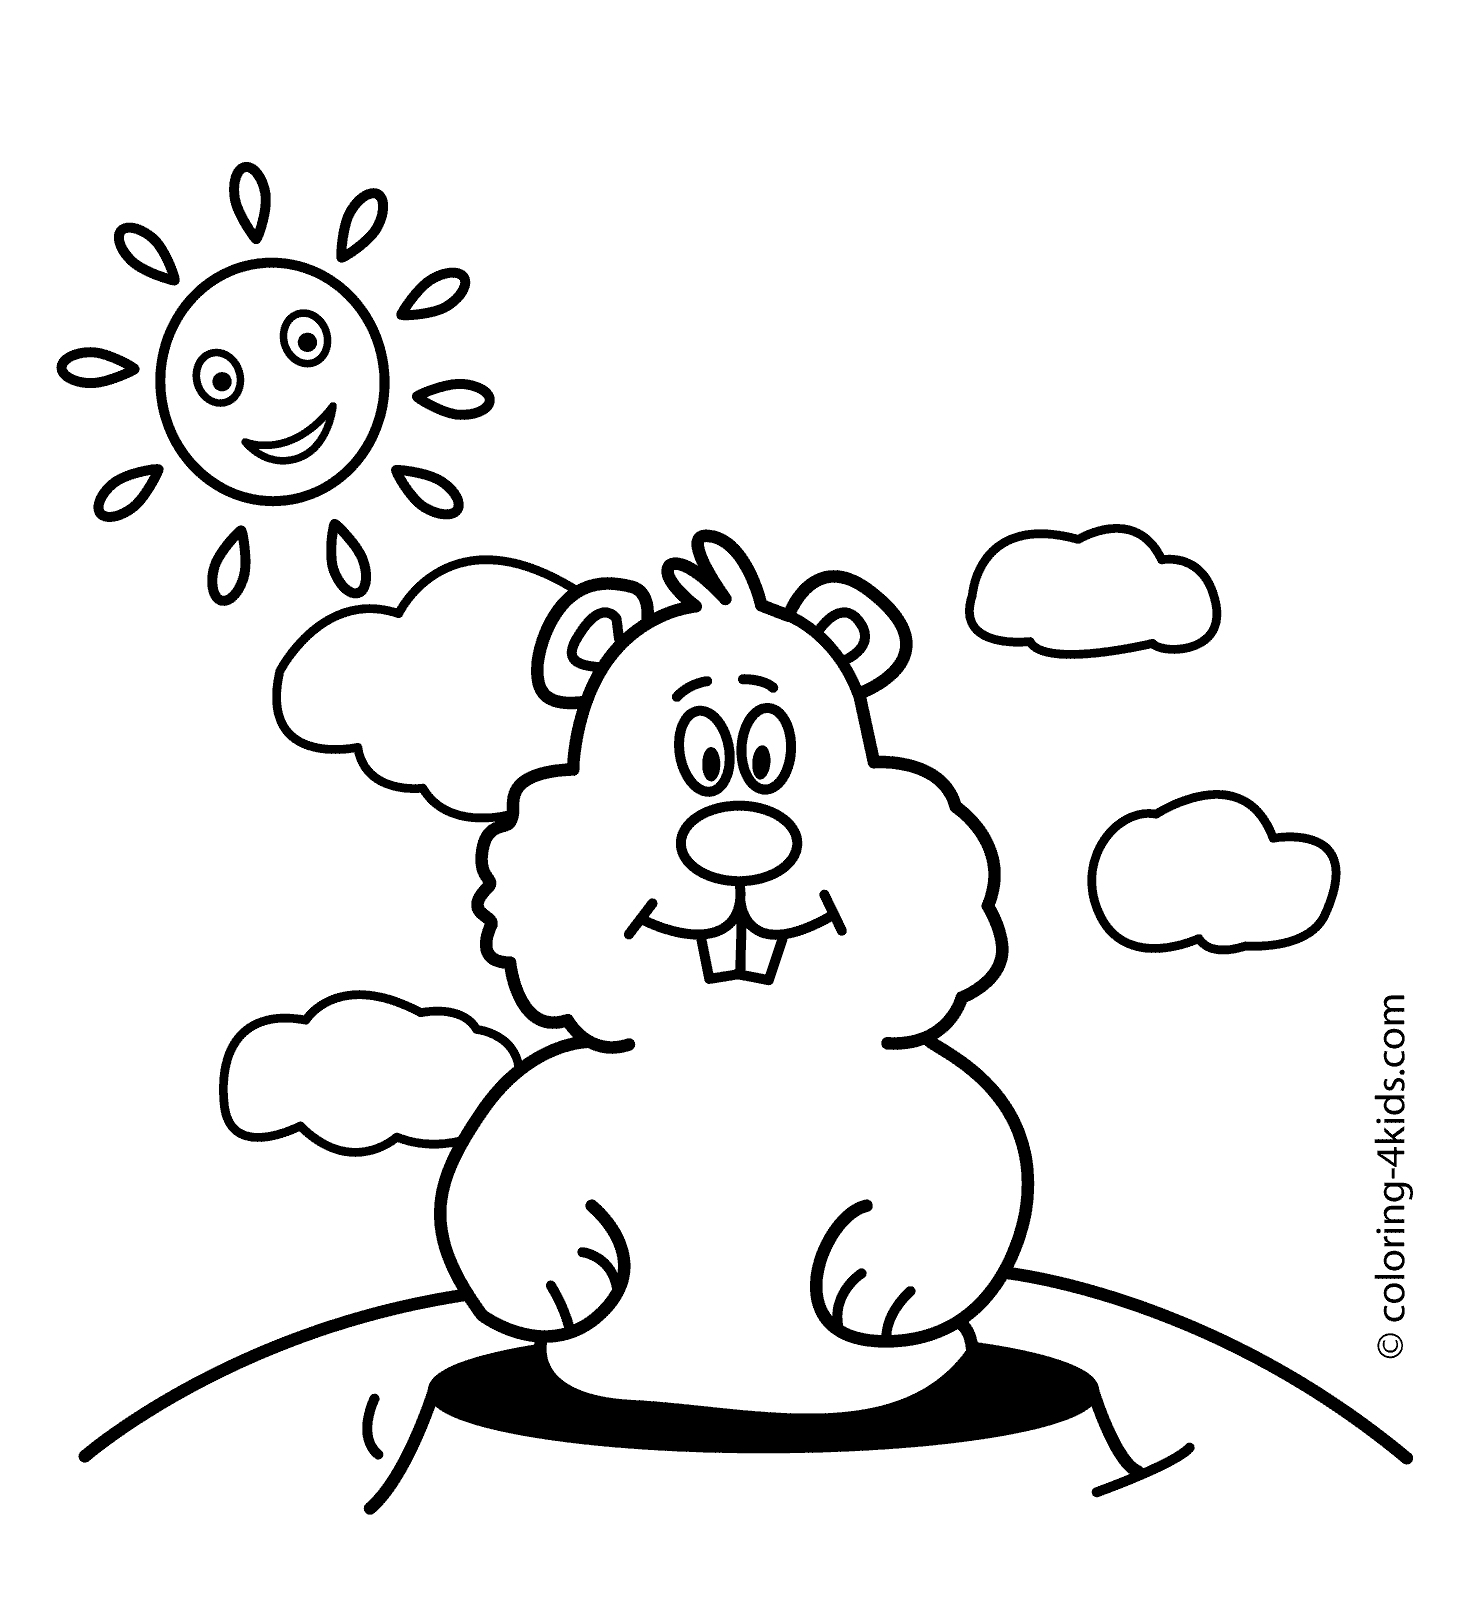 February Coloring Pages Groundhog Day For Kids 12 Printable Free - Free Printable Groundhog Day Booklet